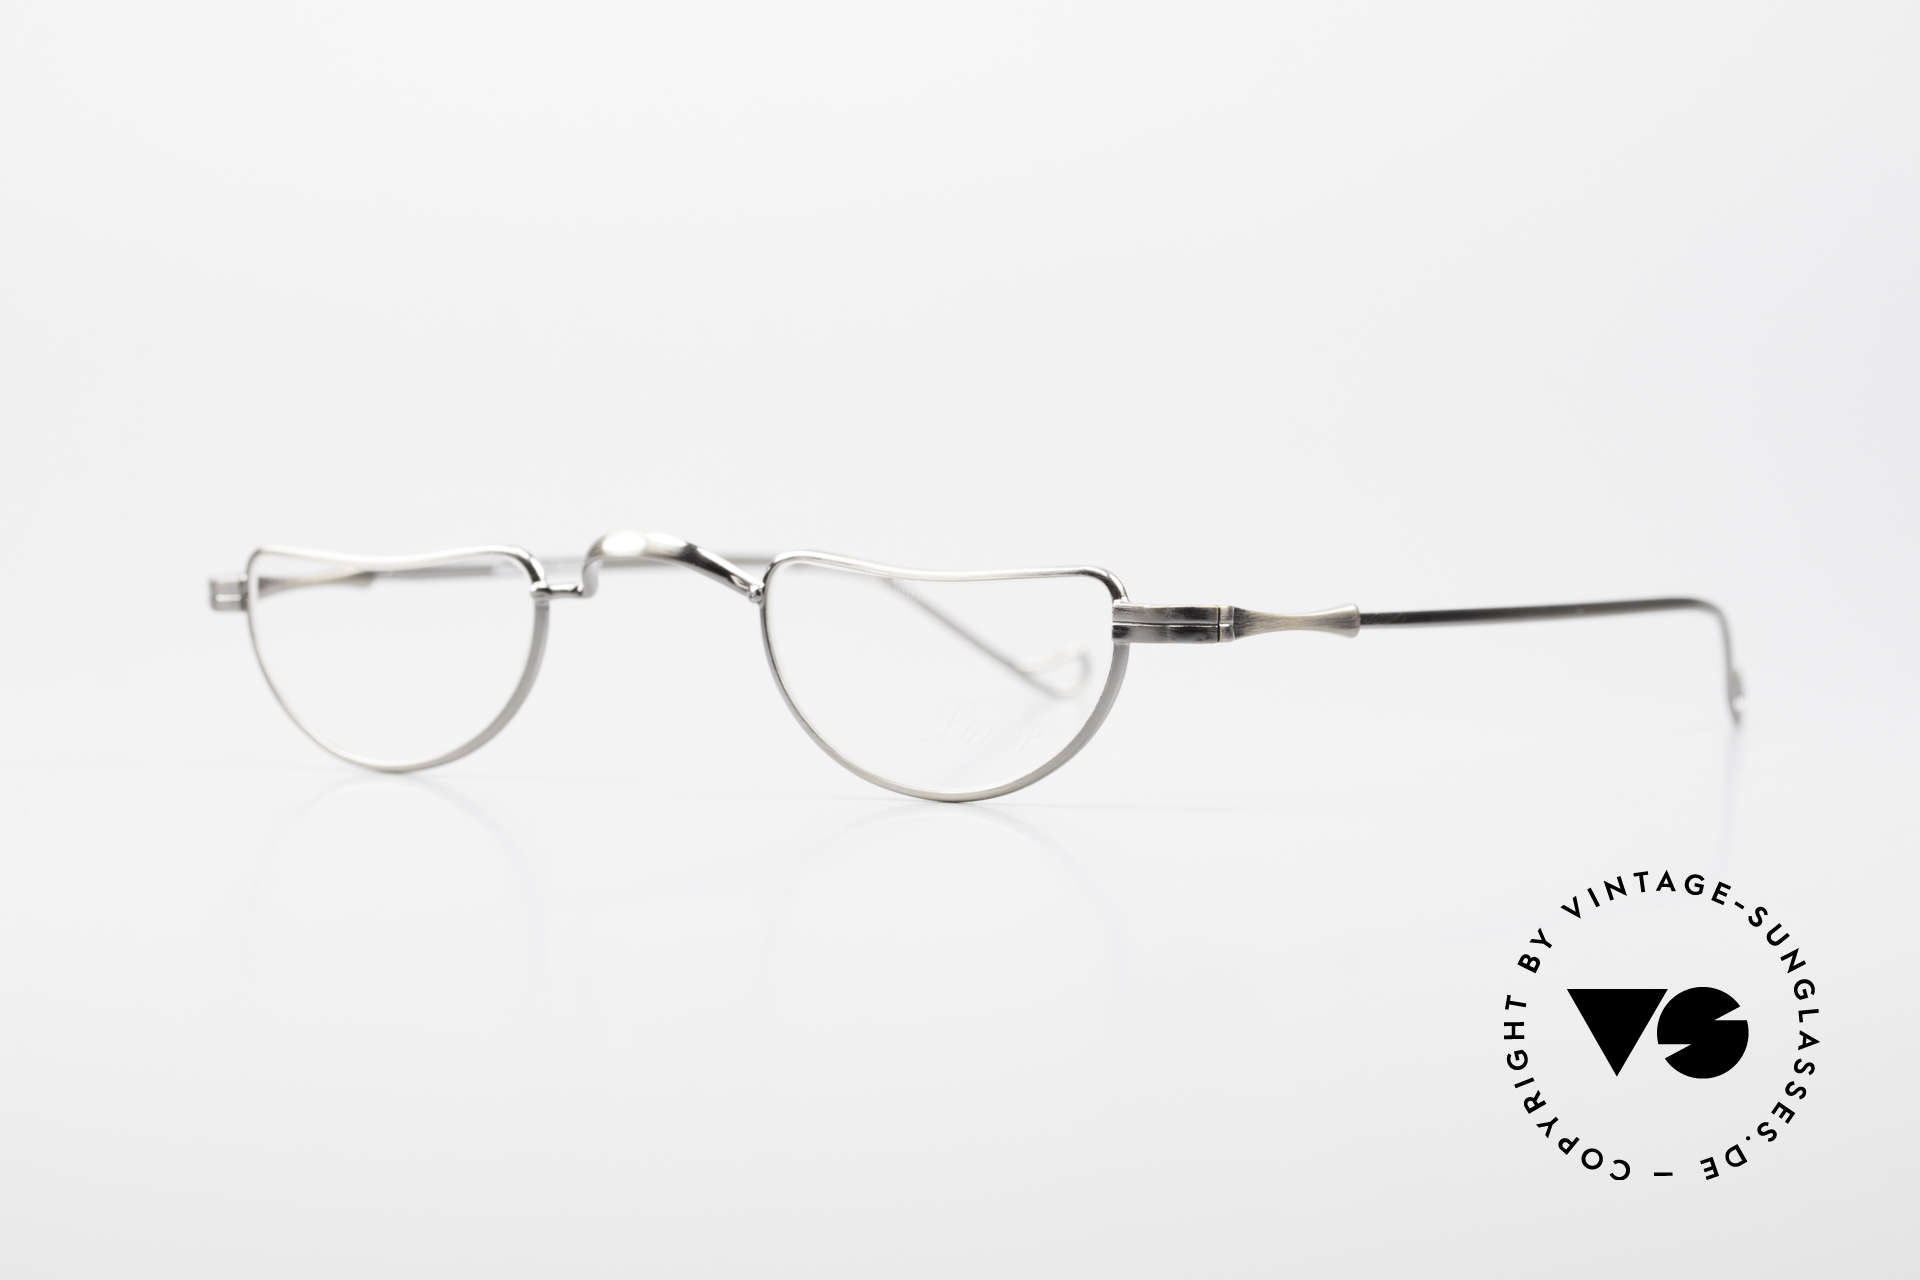 Lunor II 07 Classic Reading Eyeglasses, unisex model for ladies & gents; handmade in Germany, Made for Men and Women